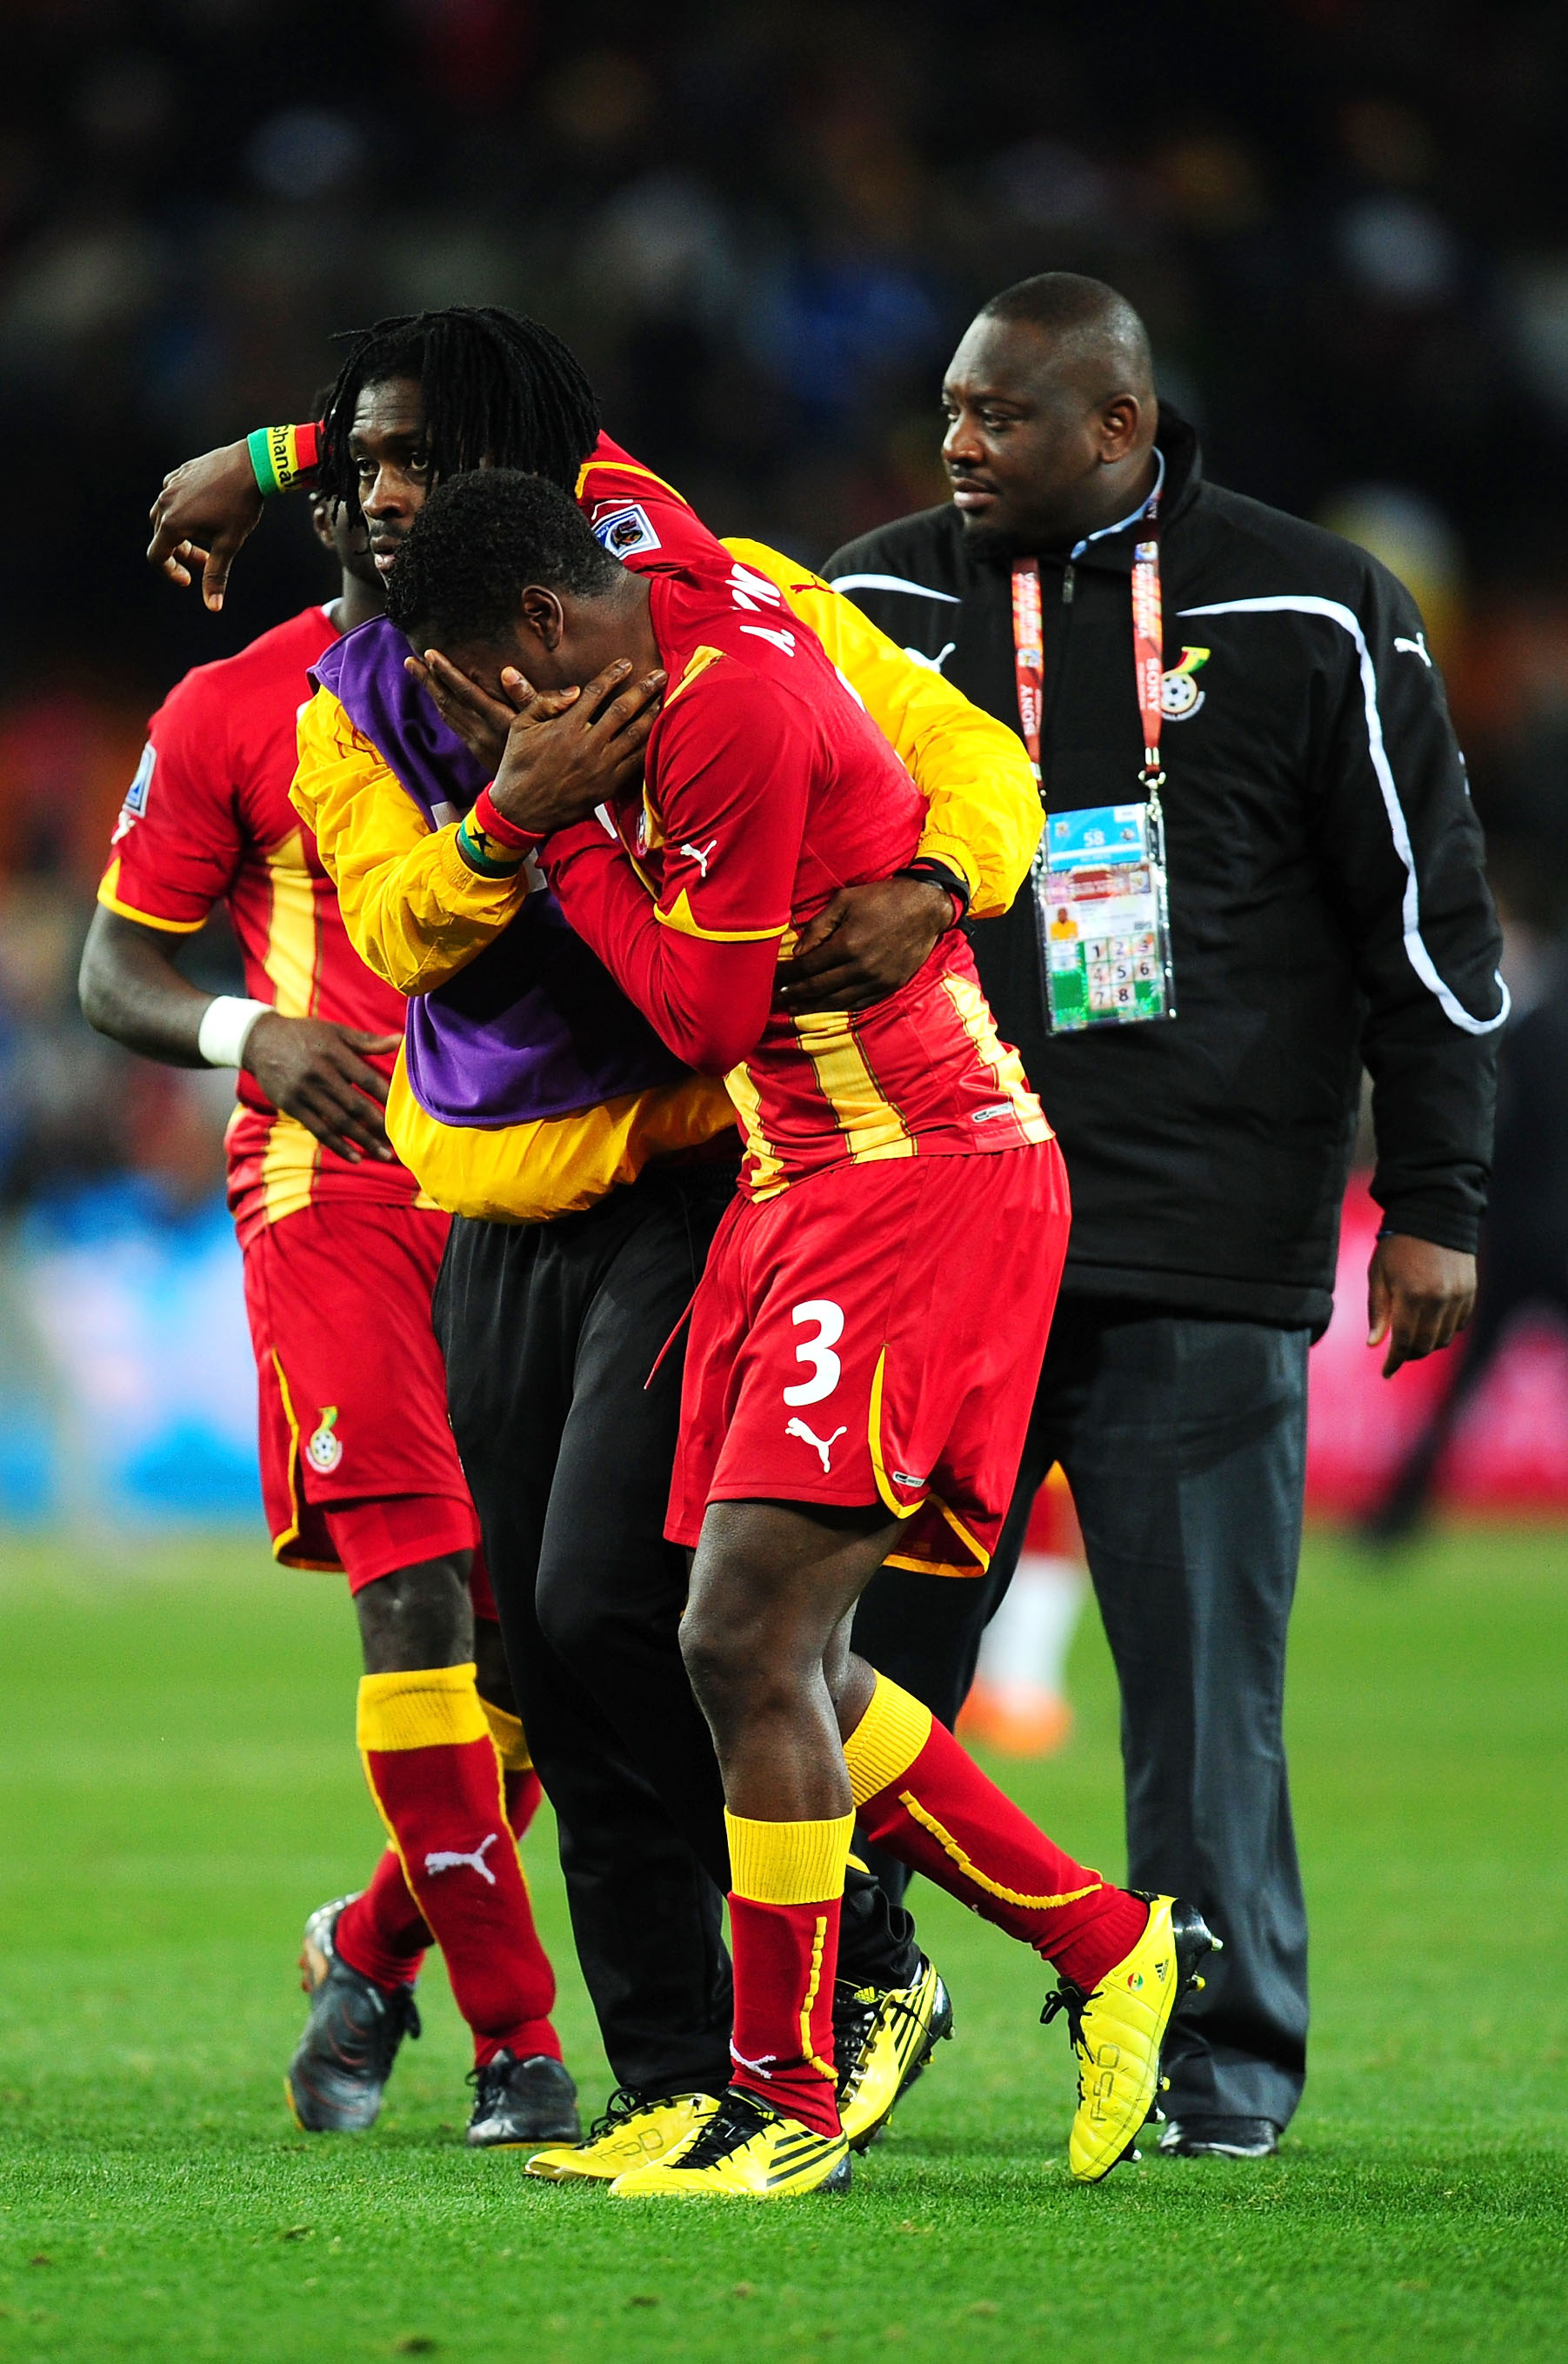 JOHANNESBURG, SOUTH AFRICA - JULY 02:  Asamoah Gyan of Ghana is consoled after his team are knocked out in a penalty shoot out during the 2010 FIFA World Cup South Africa Quarter Final match between Uruguay and Ghana at the Soccer City stadium on July 2,